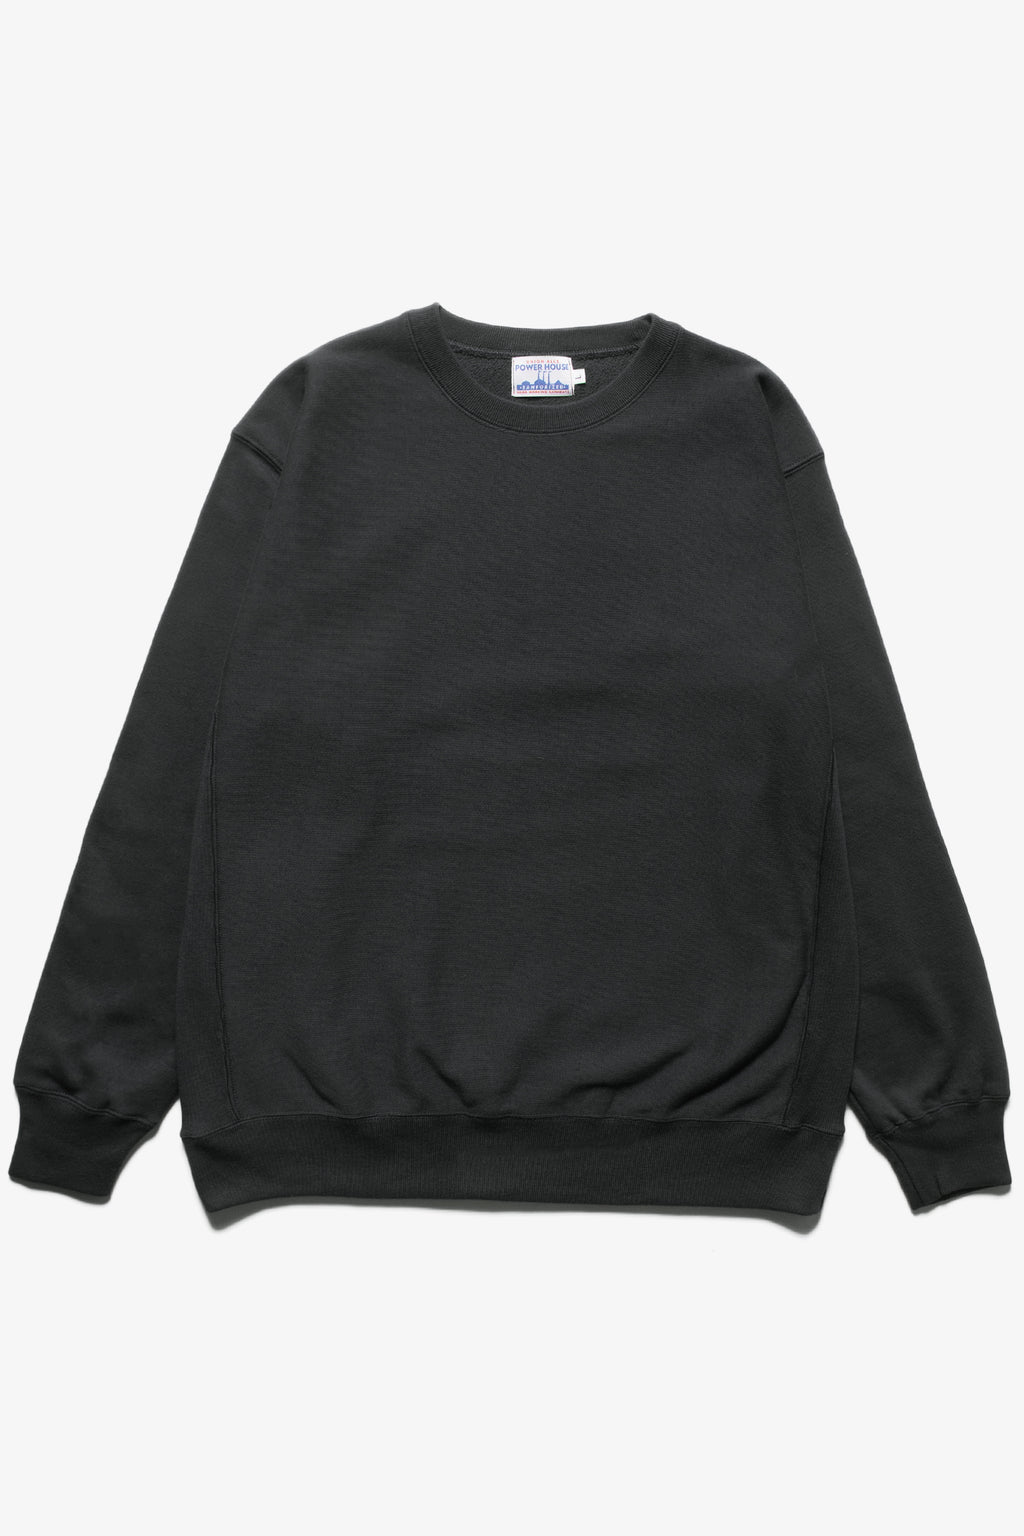 Power House - 12oz Crewneck - Black